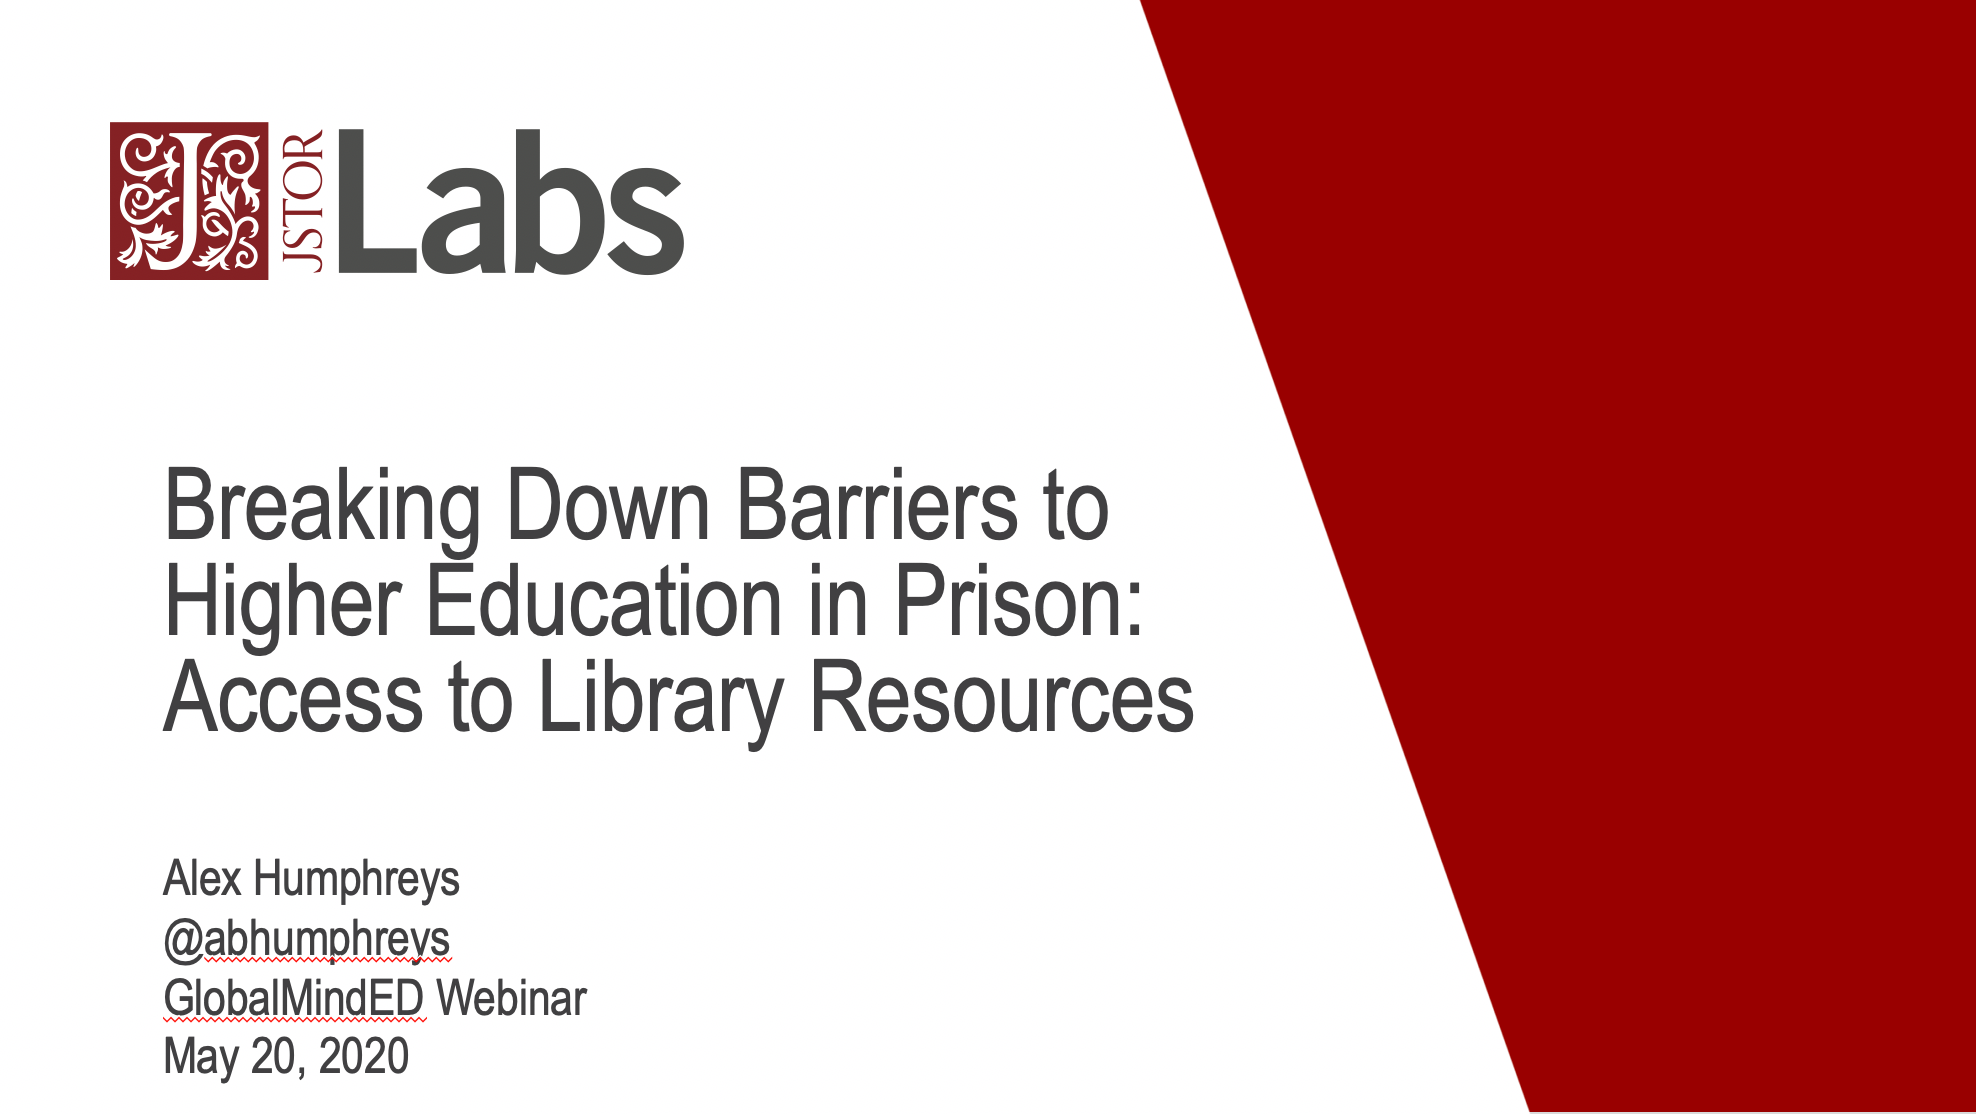 Breaking Down Barriers to Higher Education in Prison: Access to Library Resources